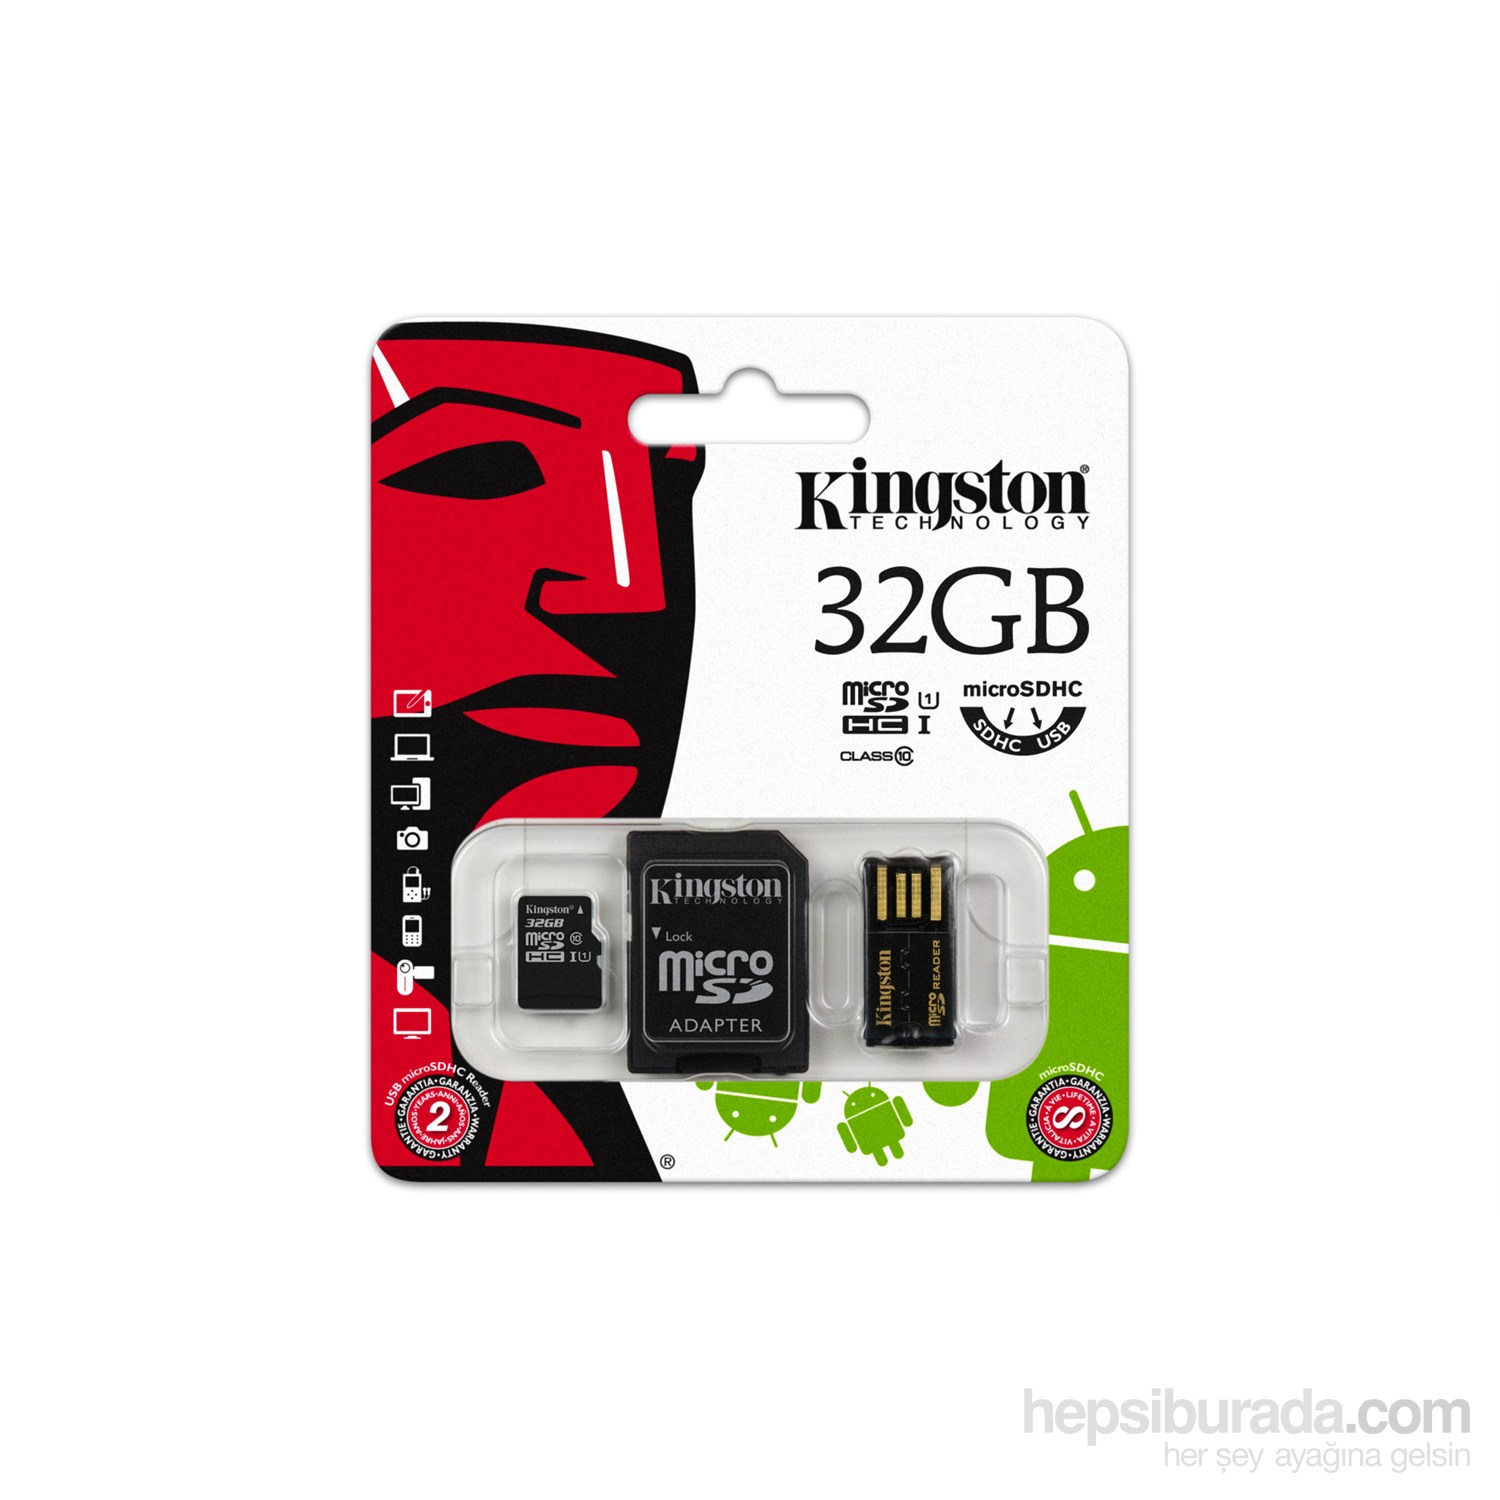 Kingston 32GB Mobility MicroSD Class 10 Sd + Usb Adaptör Kit Hafıza Kartı MBLY10G2/32GB